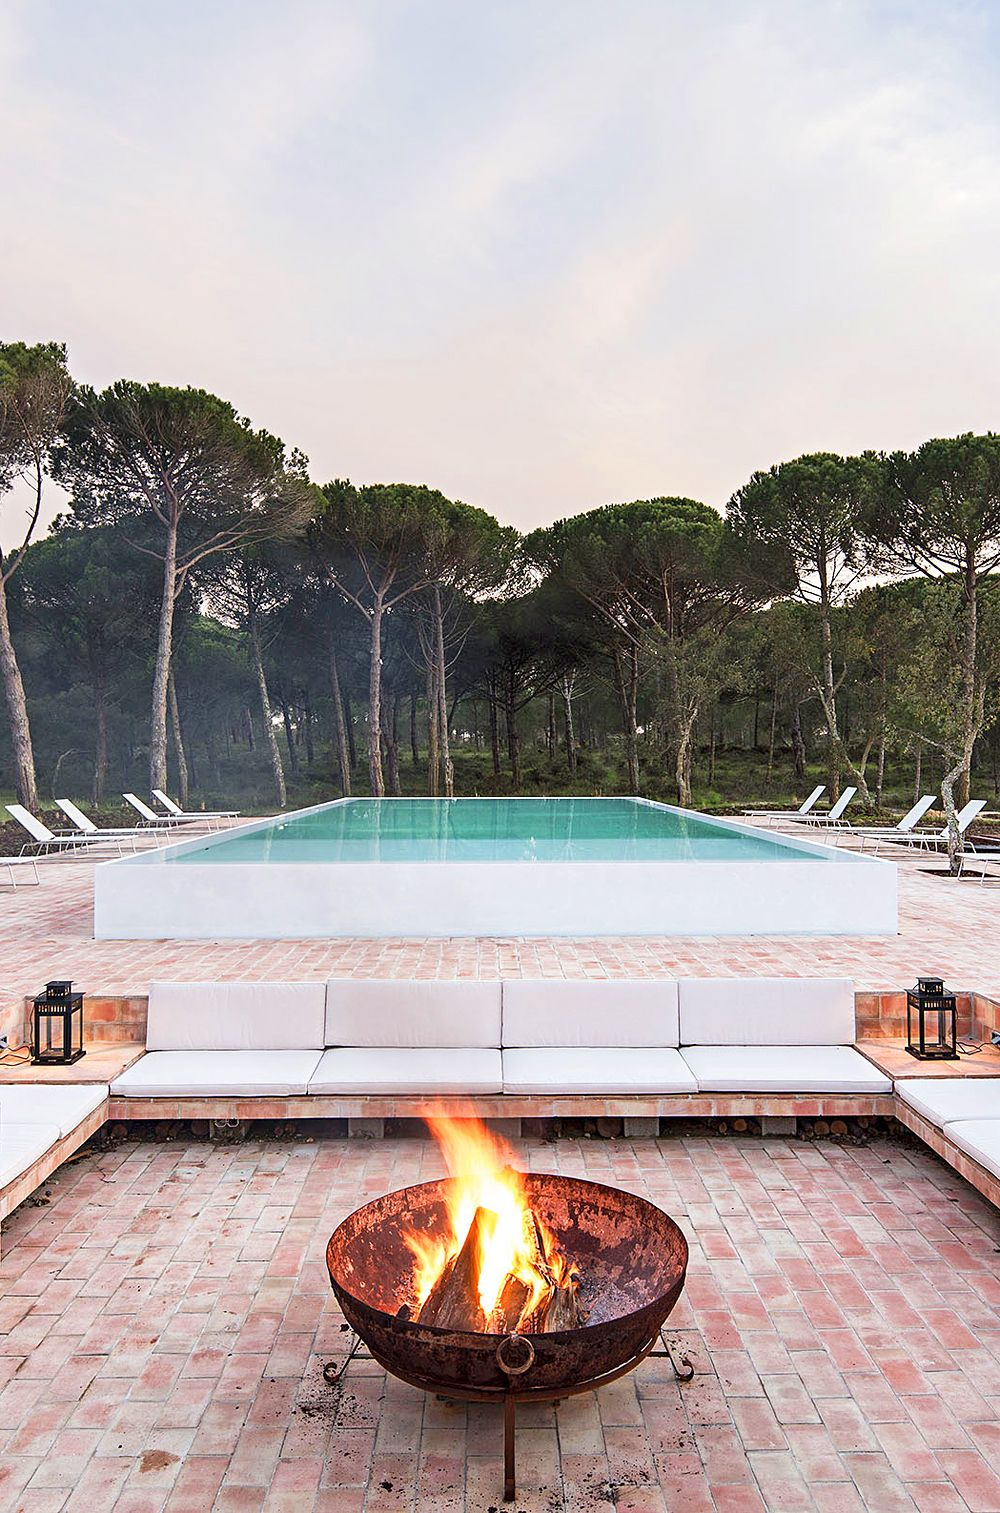 Sublime Comporta, Portugal. Contemporary country boutique hotel with spa and restaurant, near great beaches. #travel i-escape.com